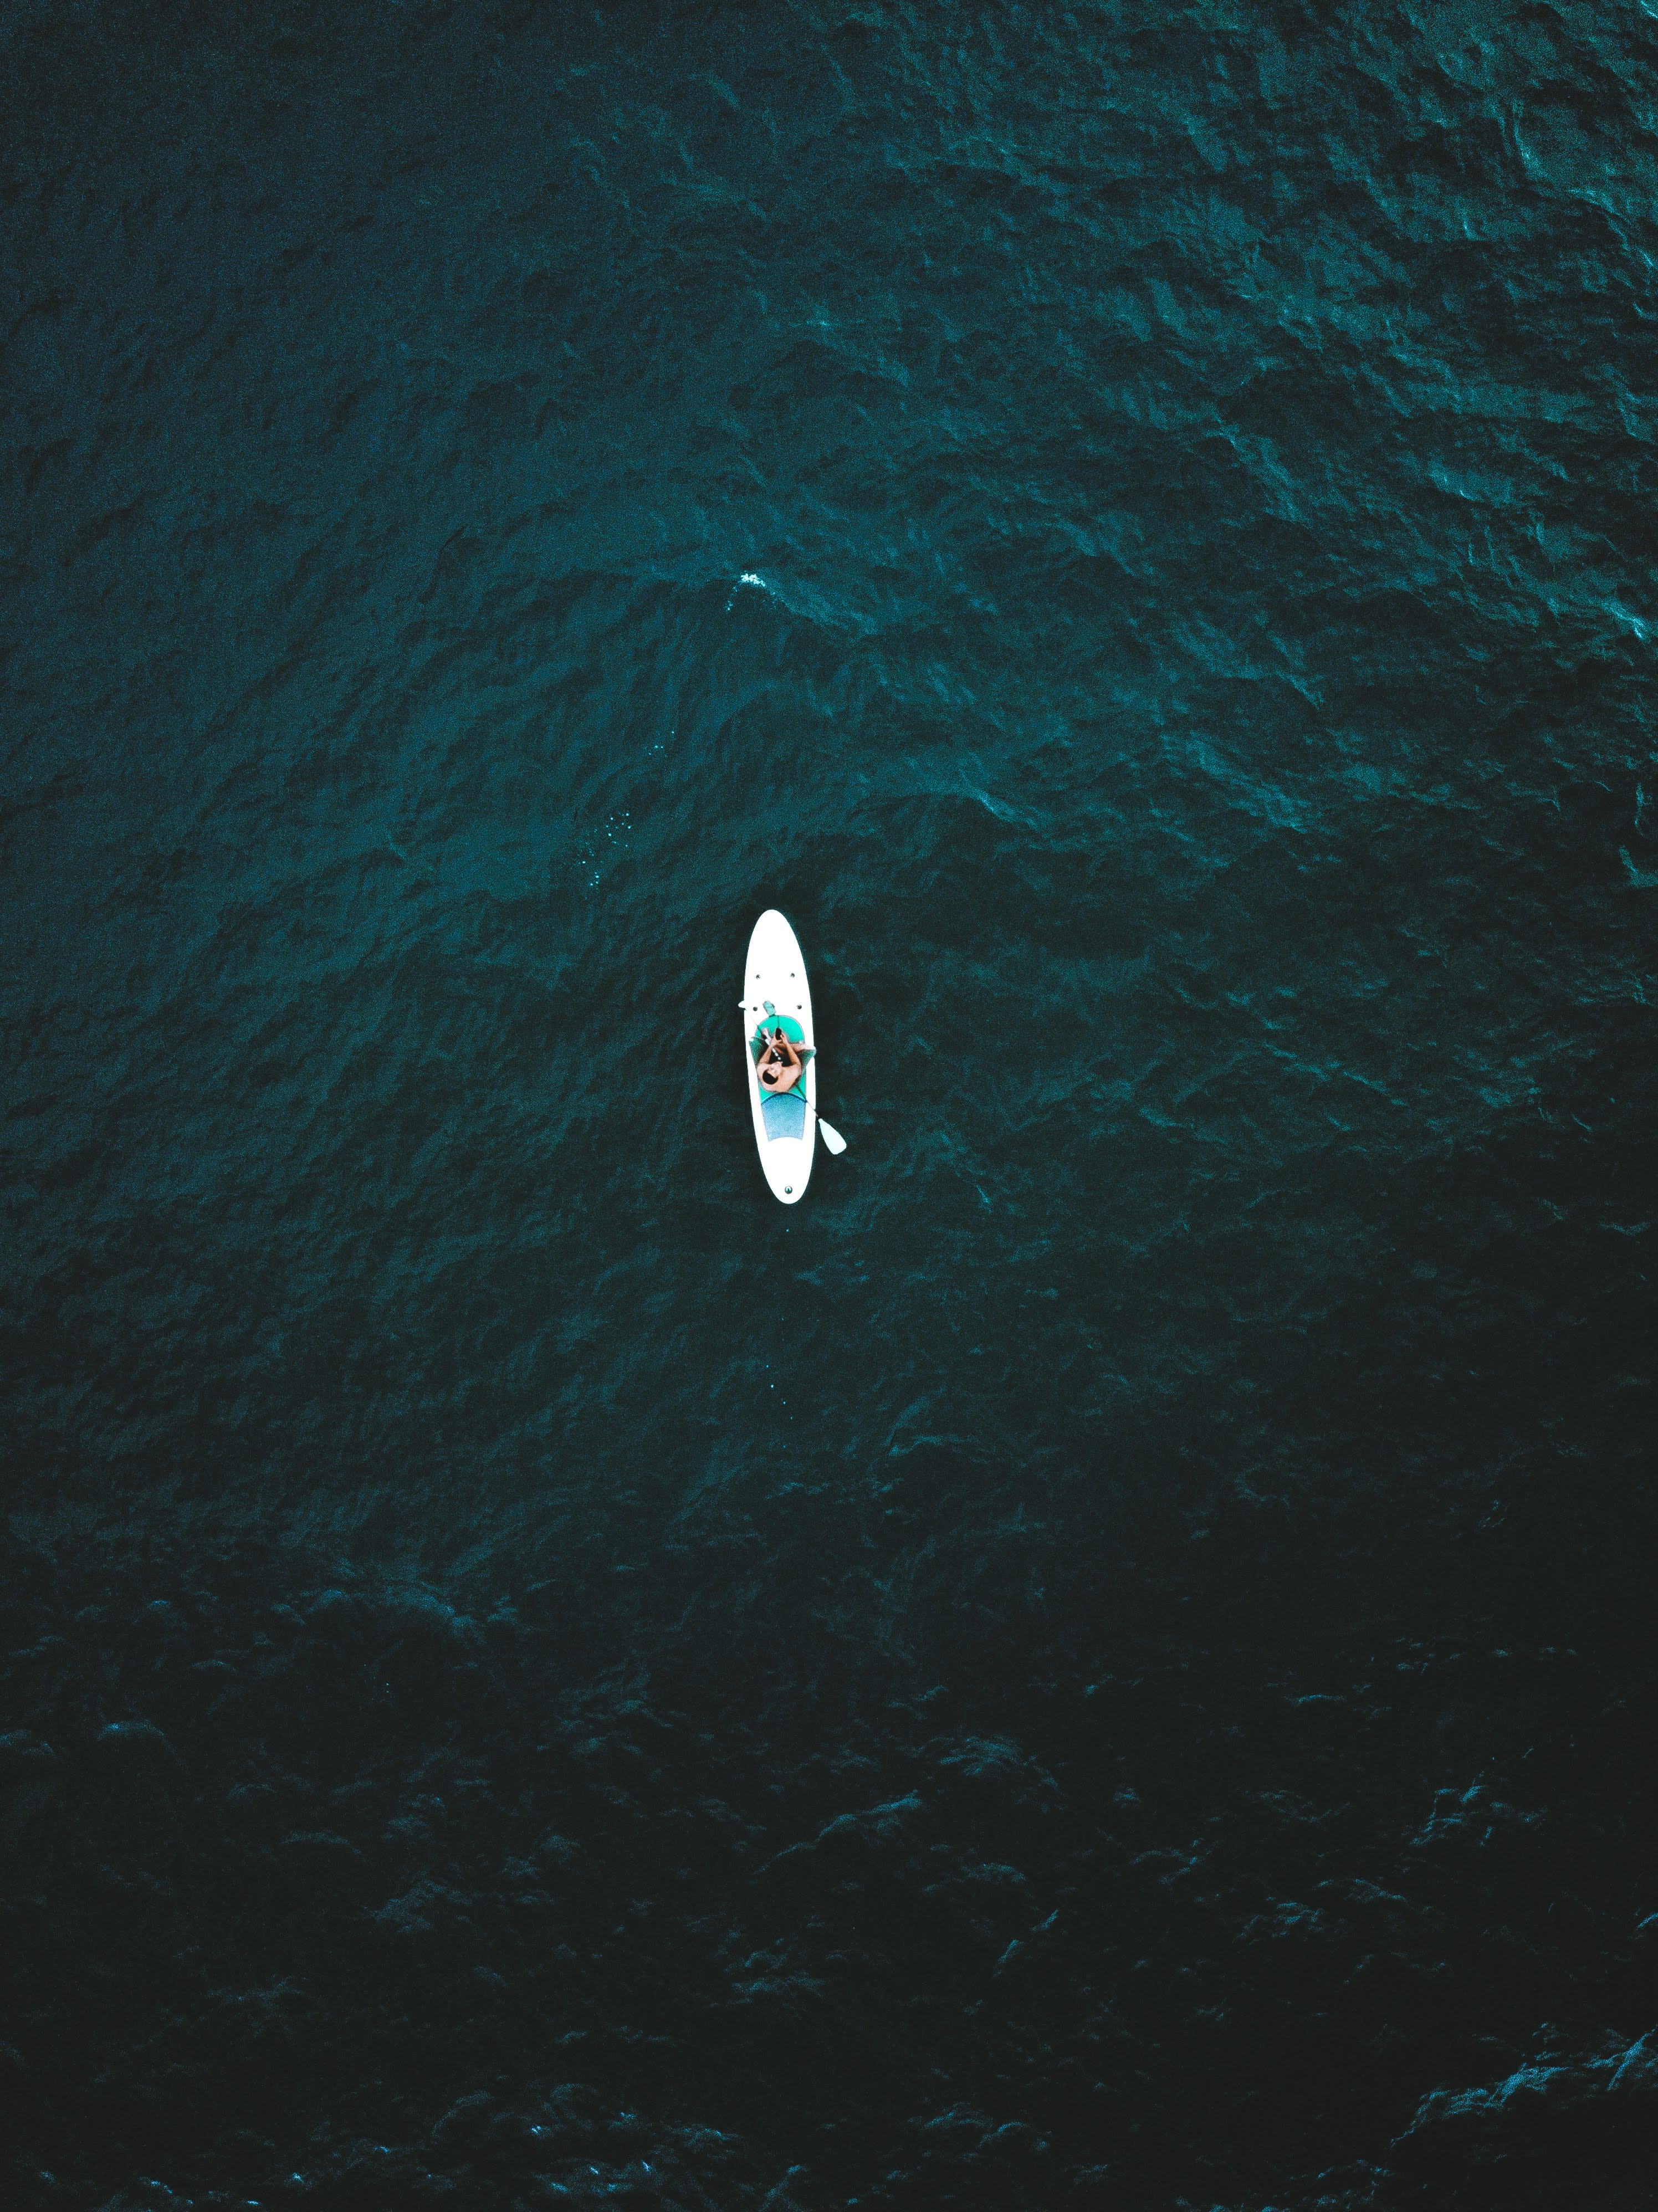 bird's-eye view of person riding in kayak on body of water